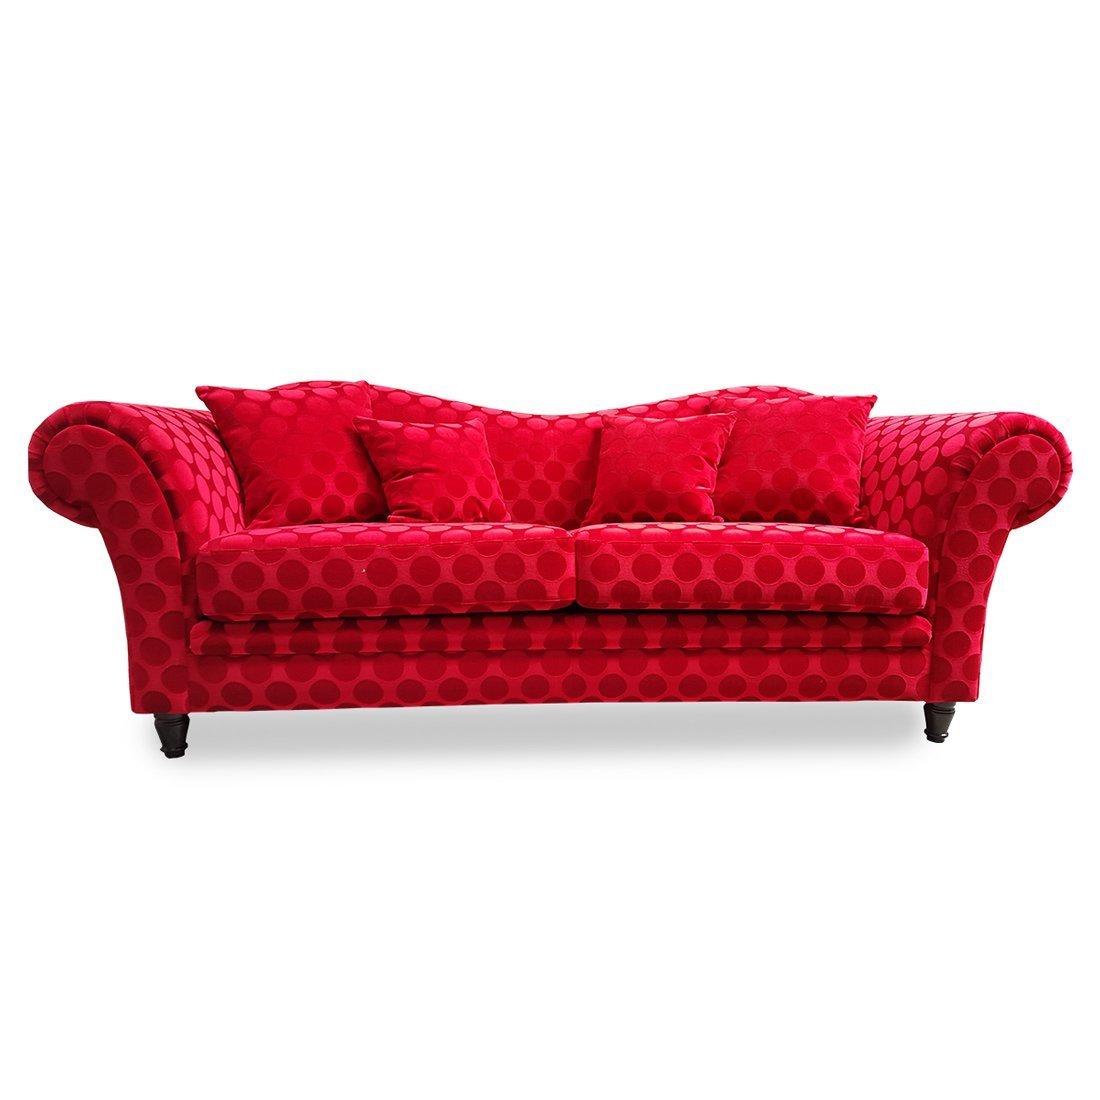 Canape chesterfield convertible max min for Canape chesterfield